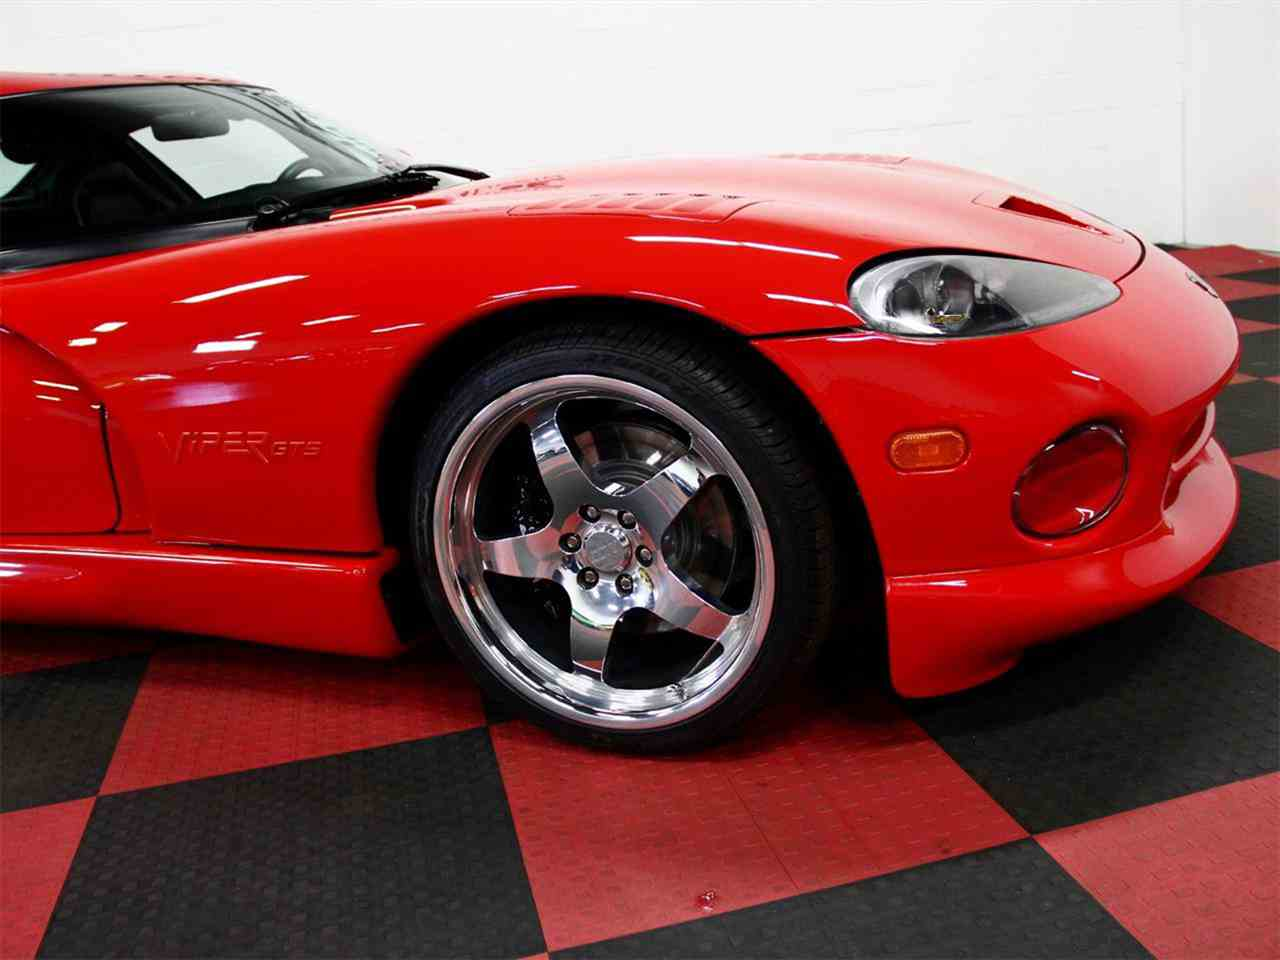 Large Picture of '98 Dodge Viper located in Illinois - $49,000.00 Offered by a Private Seller - LSFT